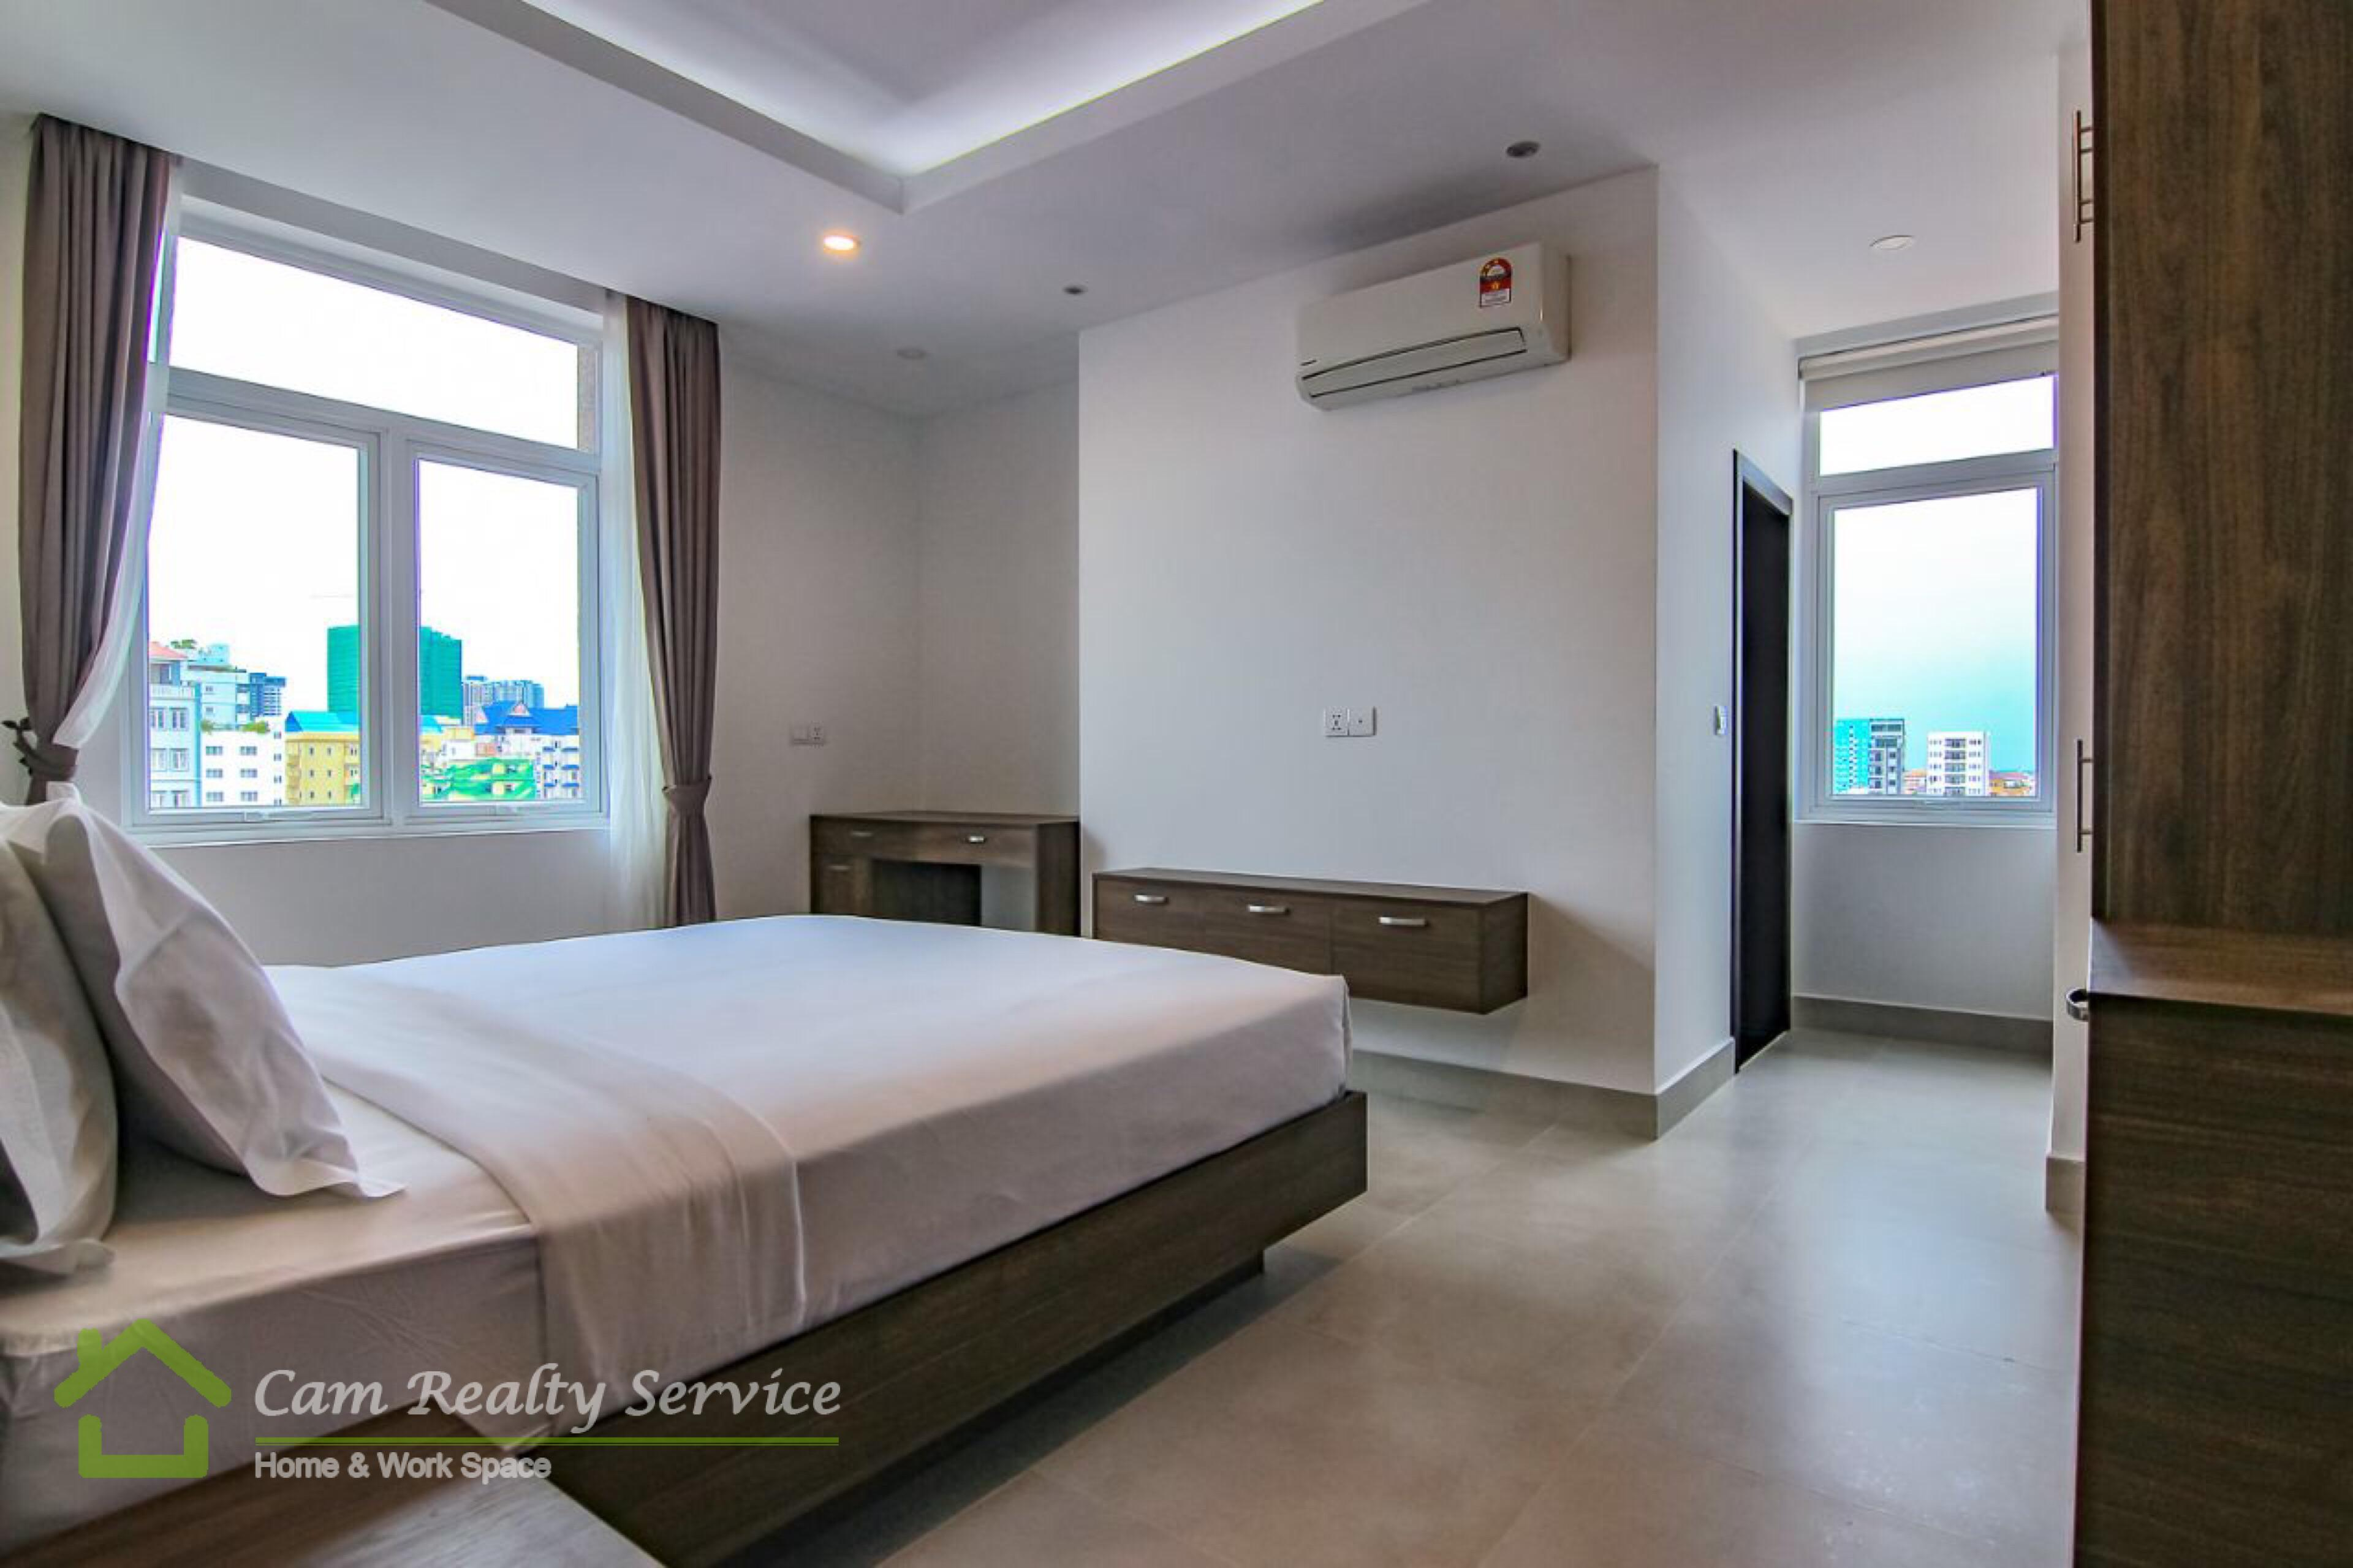 Russian Market area| Fully furnished studio serviced apartment available for rent| 550$/month| Pool & Gym| Phnom Penh